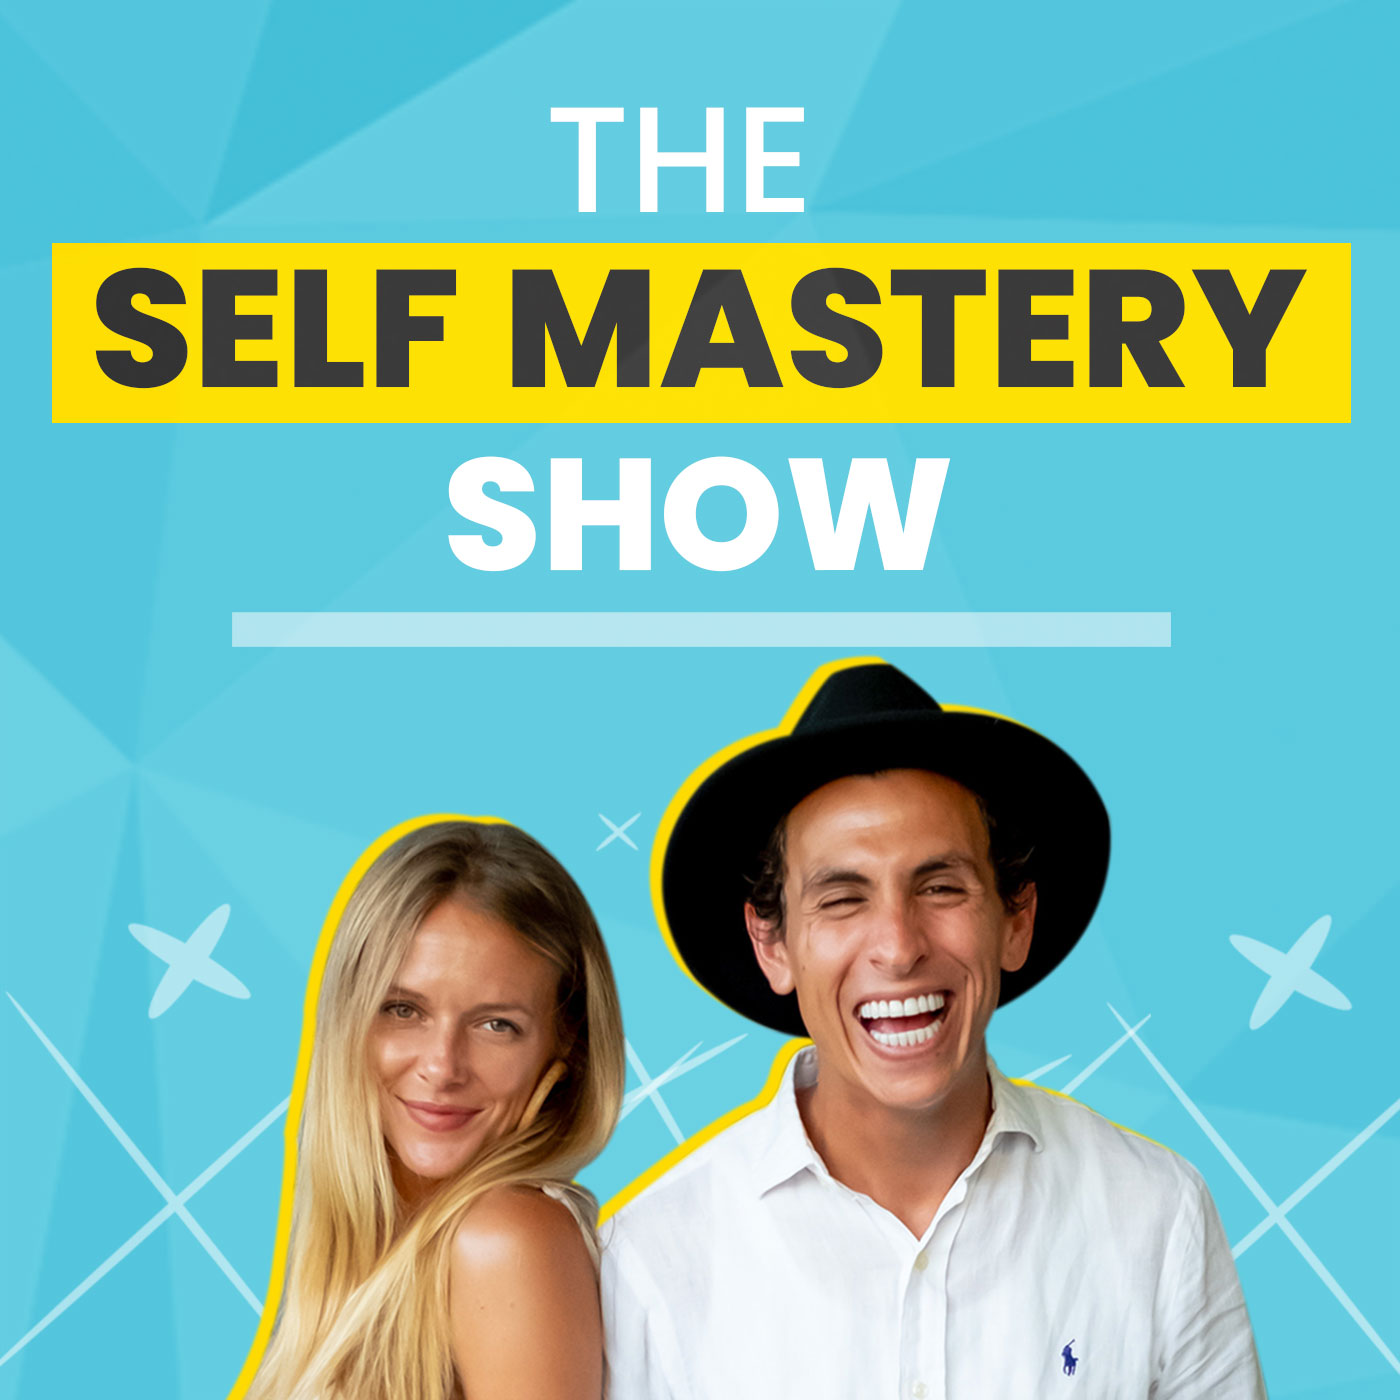 The Self Mastery Show show art